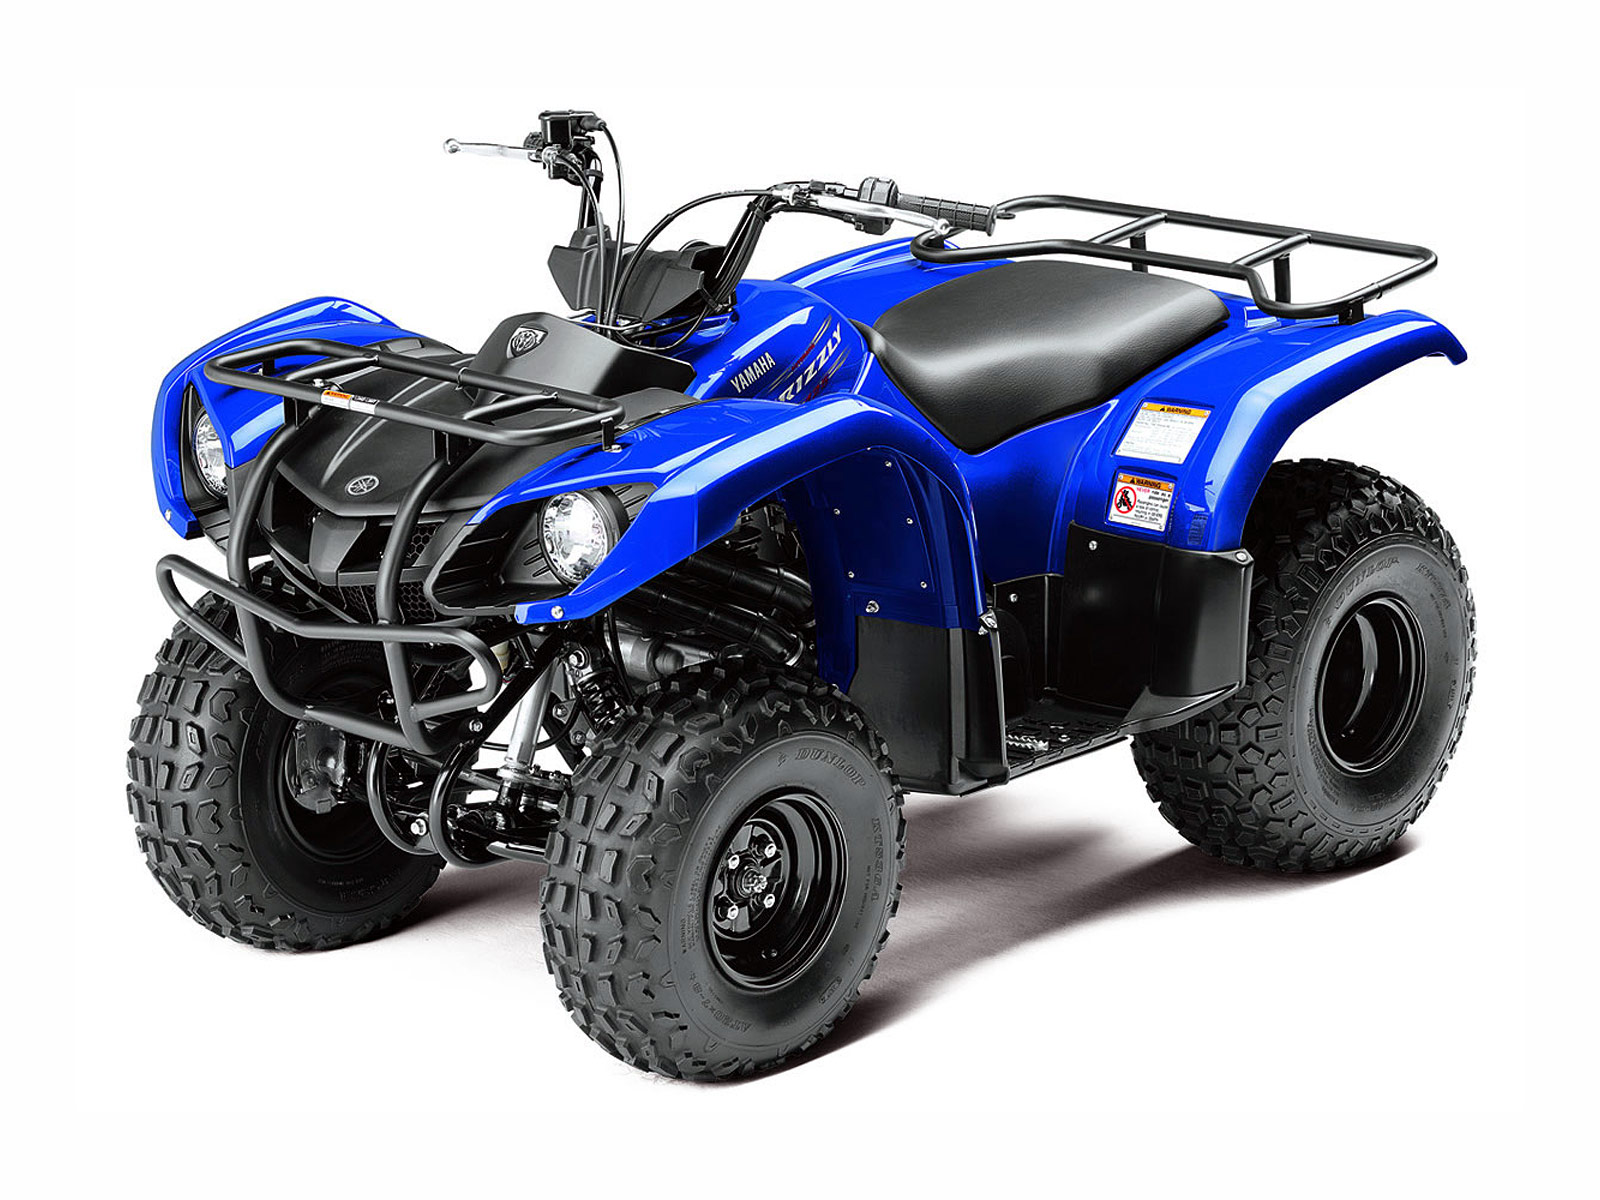 2012 yamaha pictures grizzly 125 automatic atv. Black Bedroom Furniture Sets. Home Design Ideas